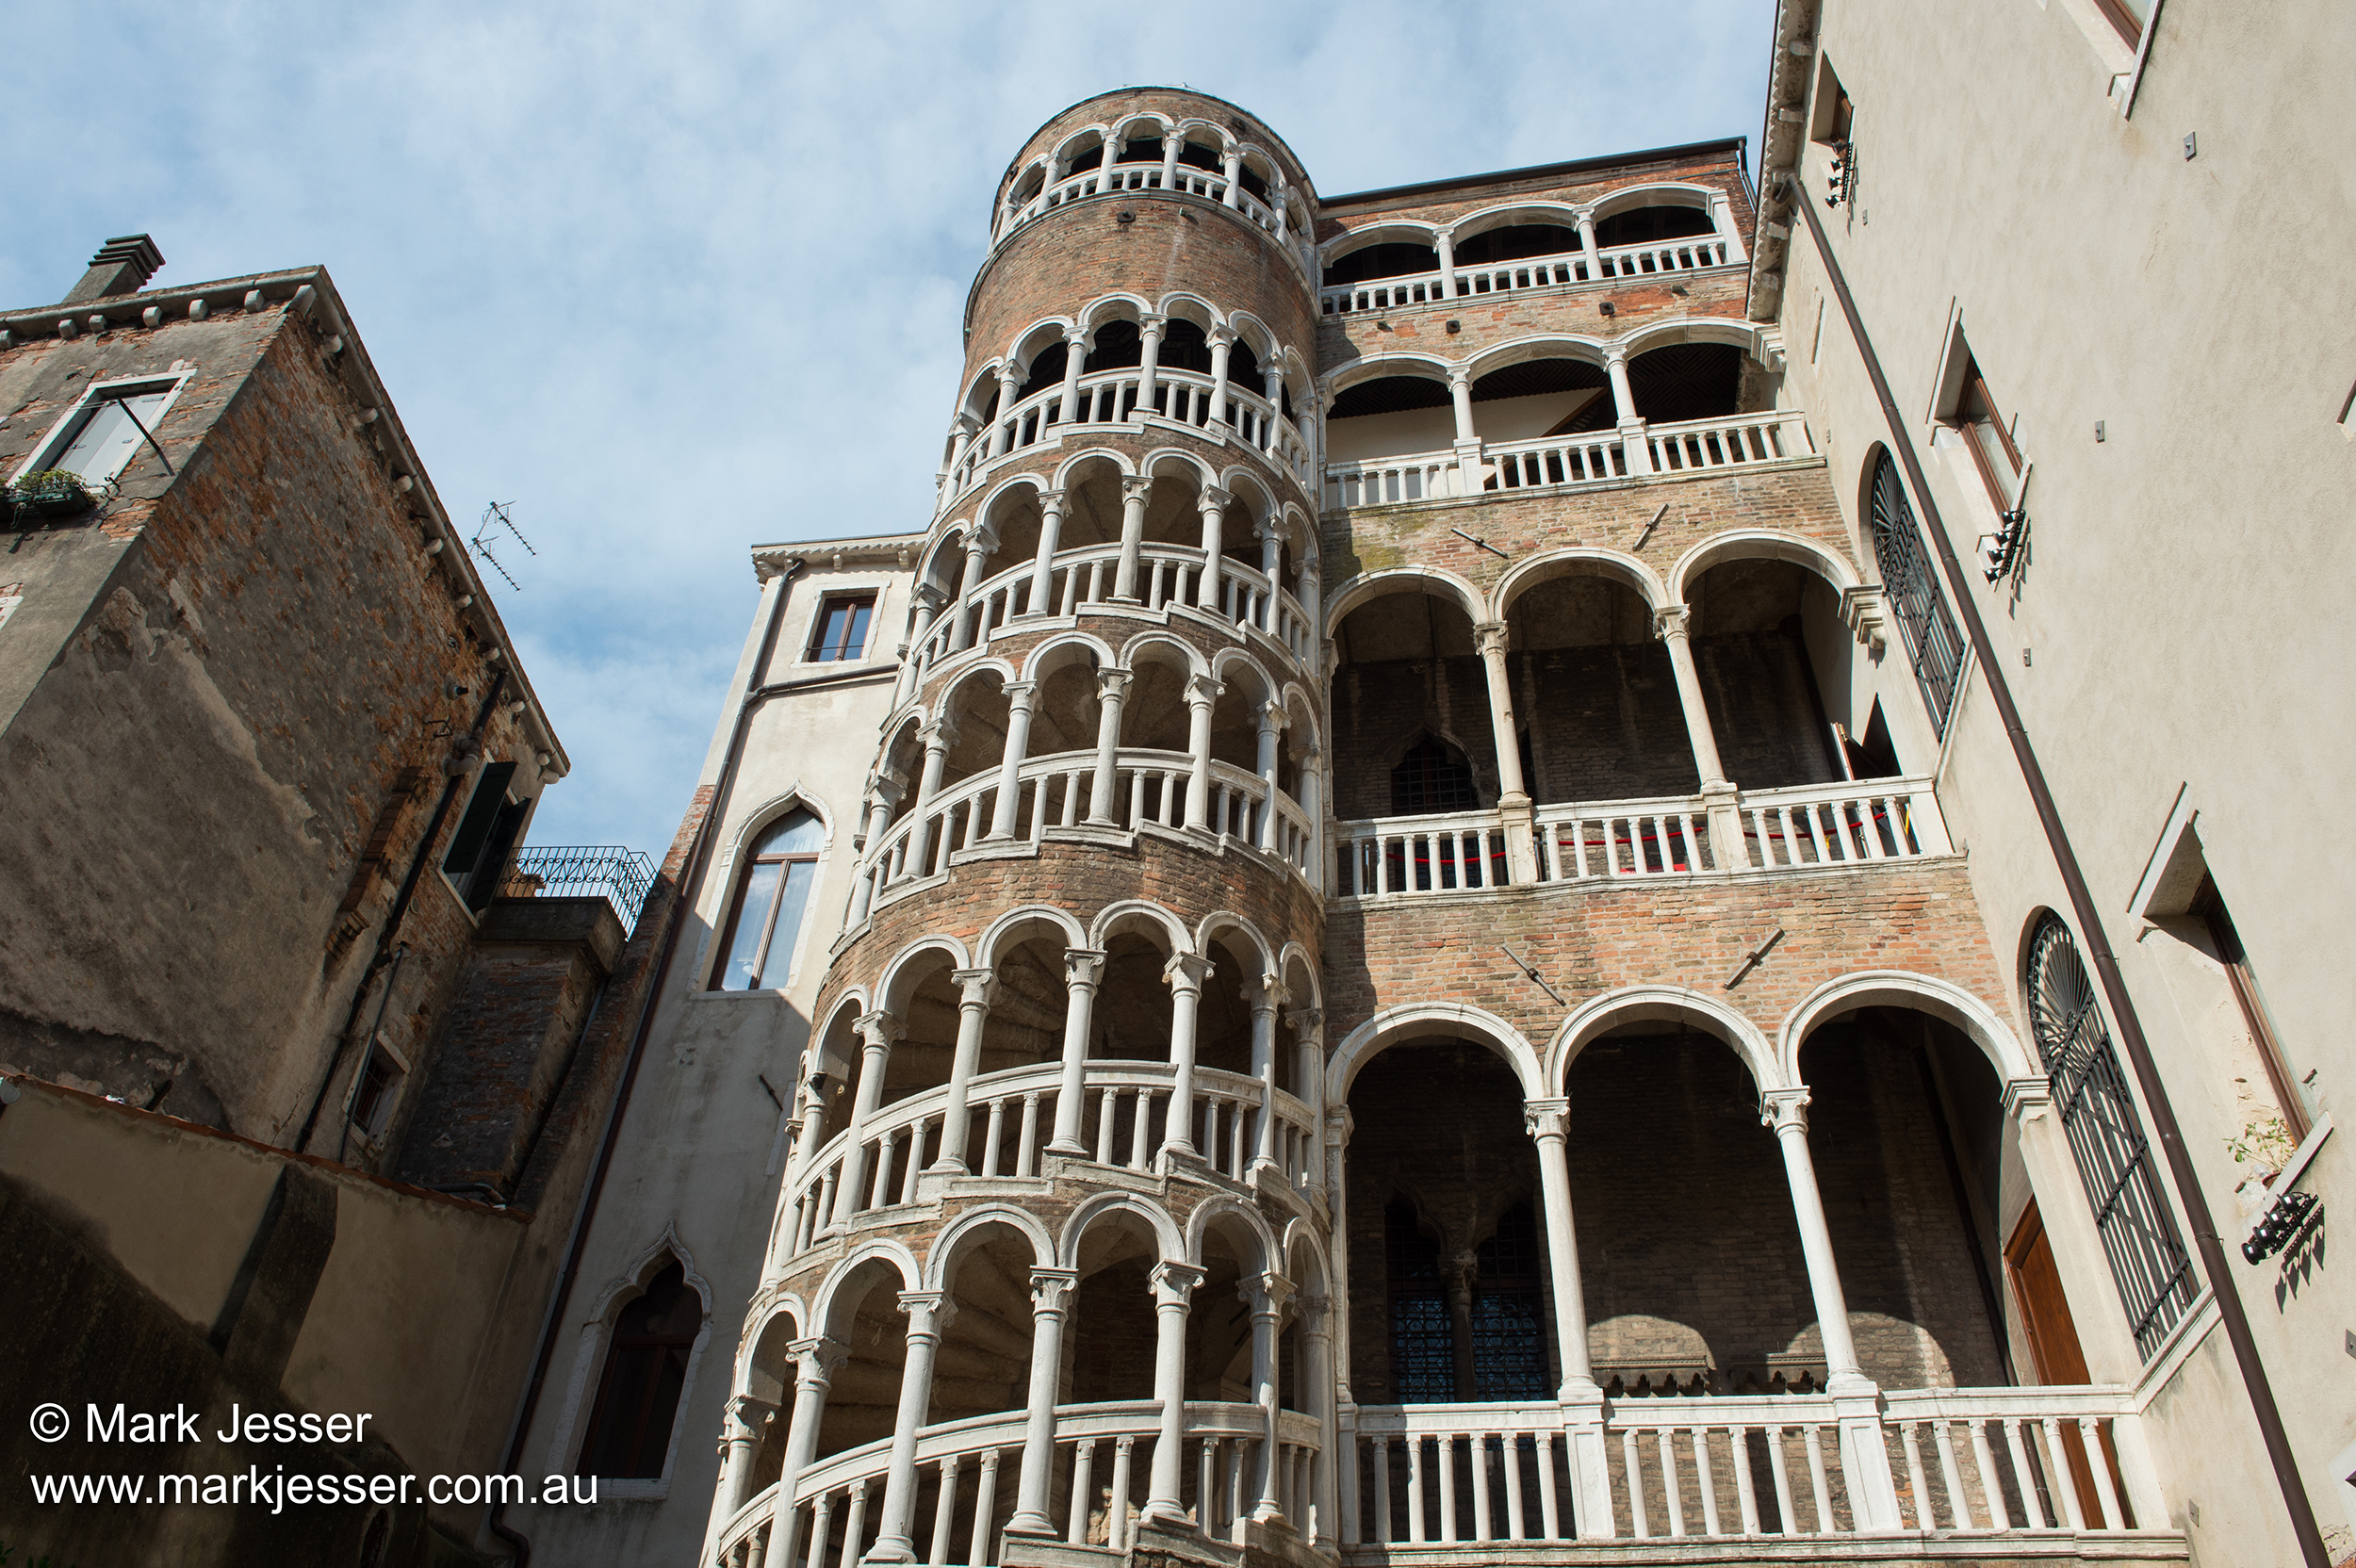 (Photo Mark Jesser) Venice, Italy. - Palazzo Contarini del Bovolo (Spiral Stair Case)